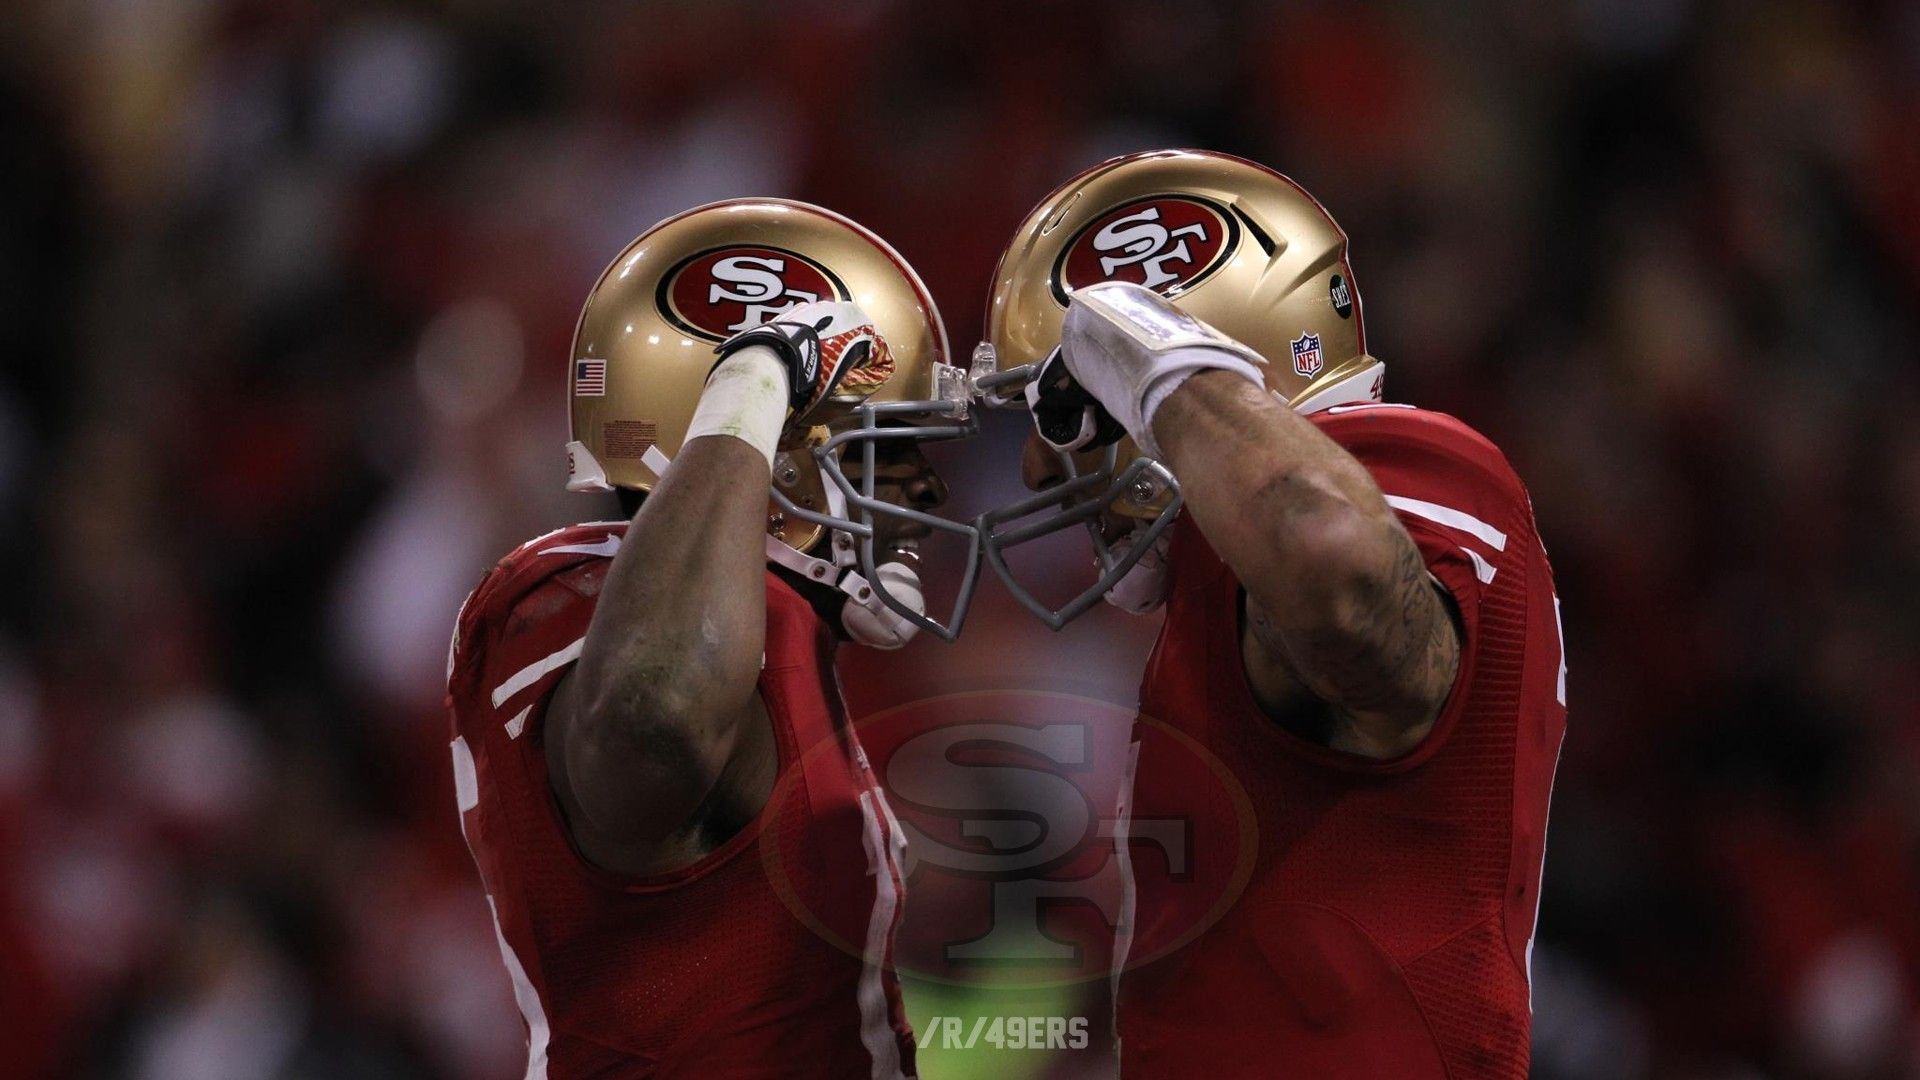 colin kaepernick wallpaper hd